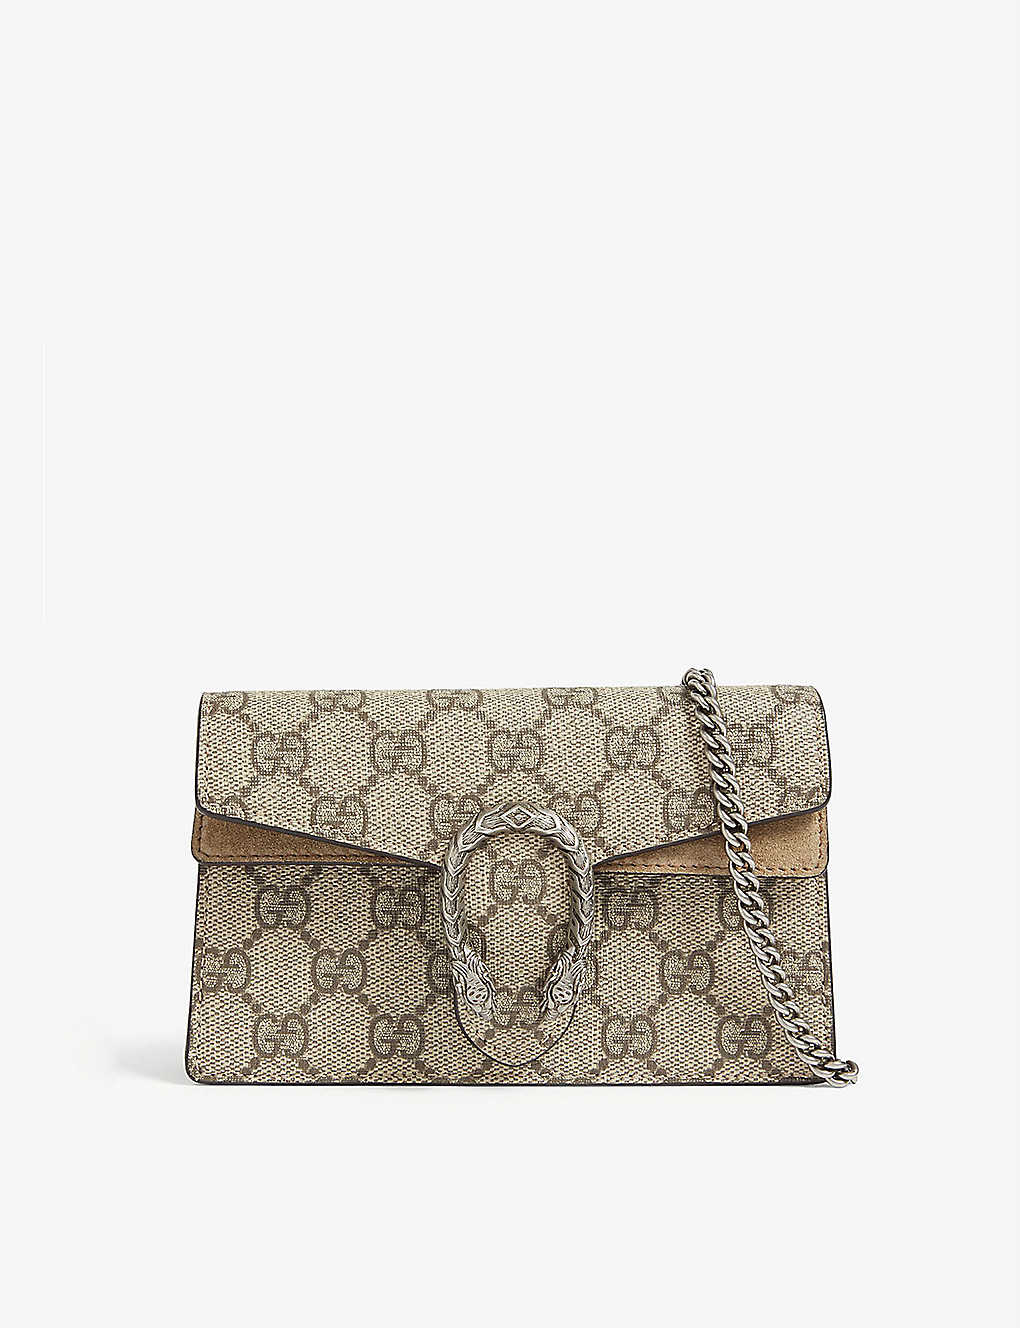 dec452171c2 GUCCI - GG Supreme Dionysus super mini shoulder bag | Selfridges.com